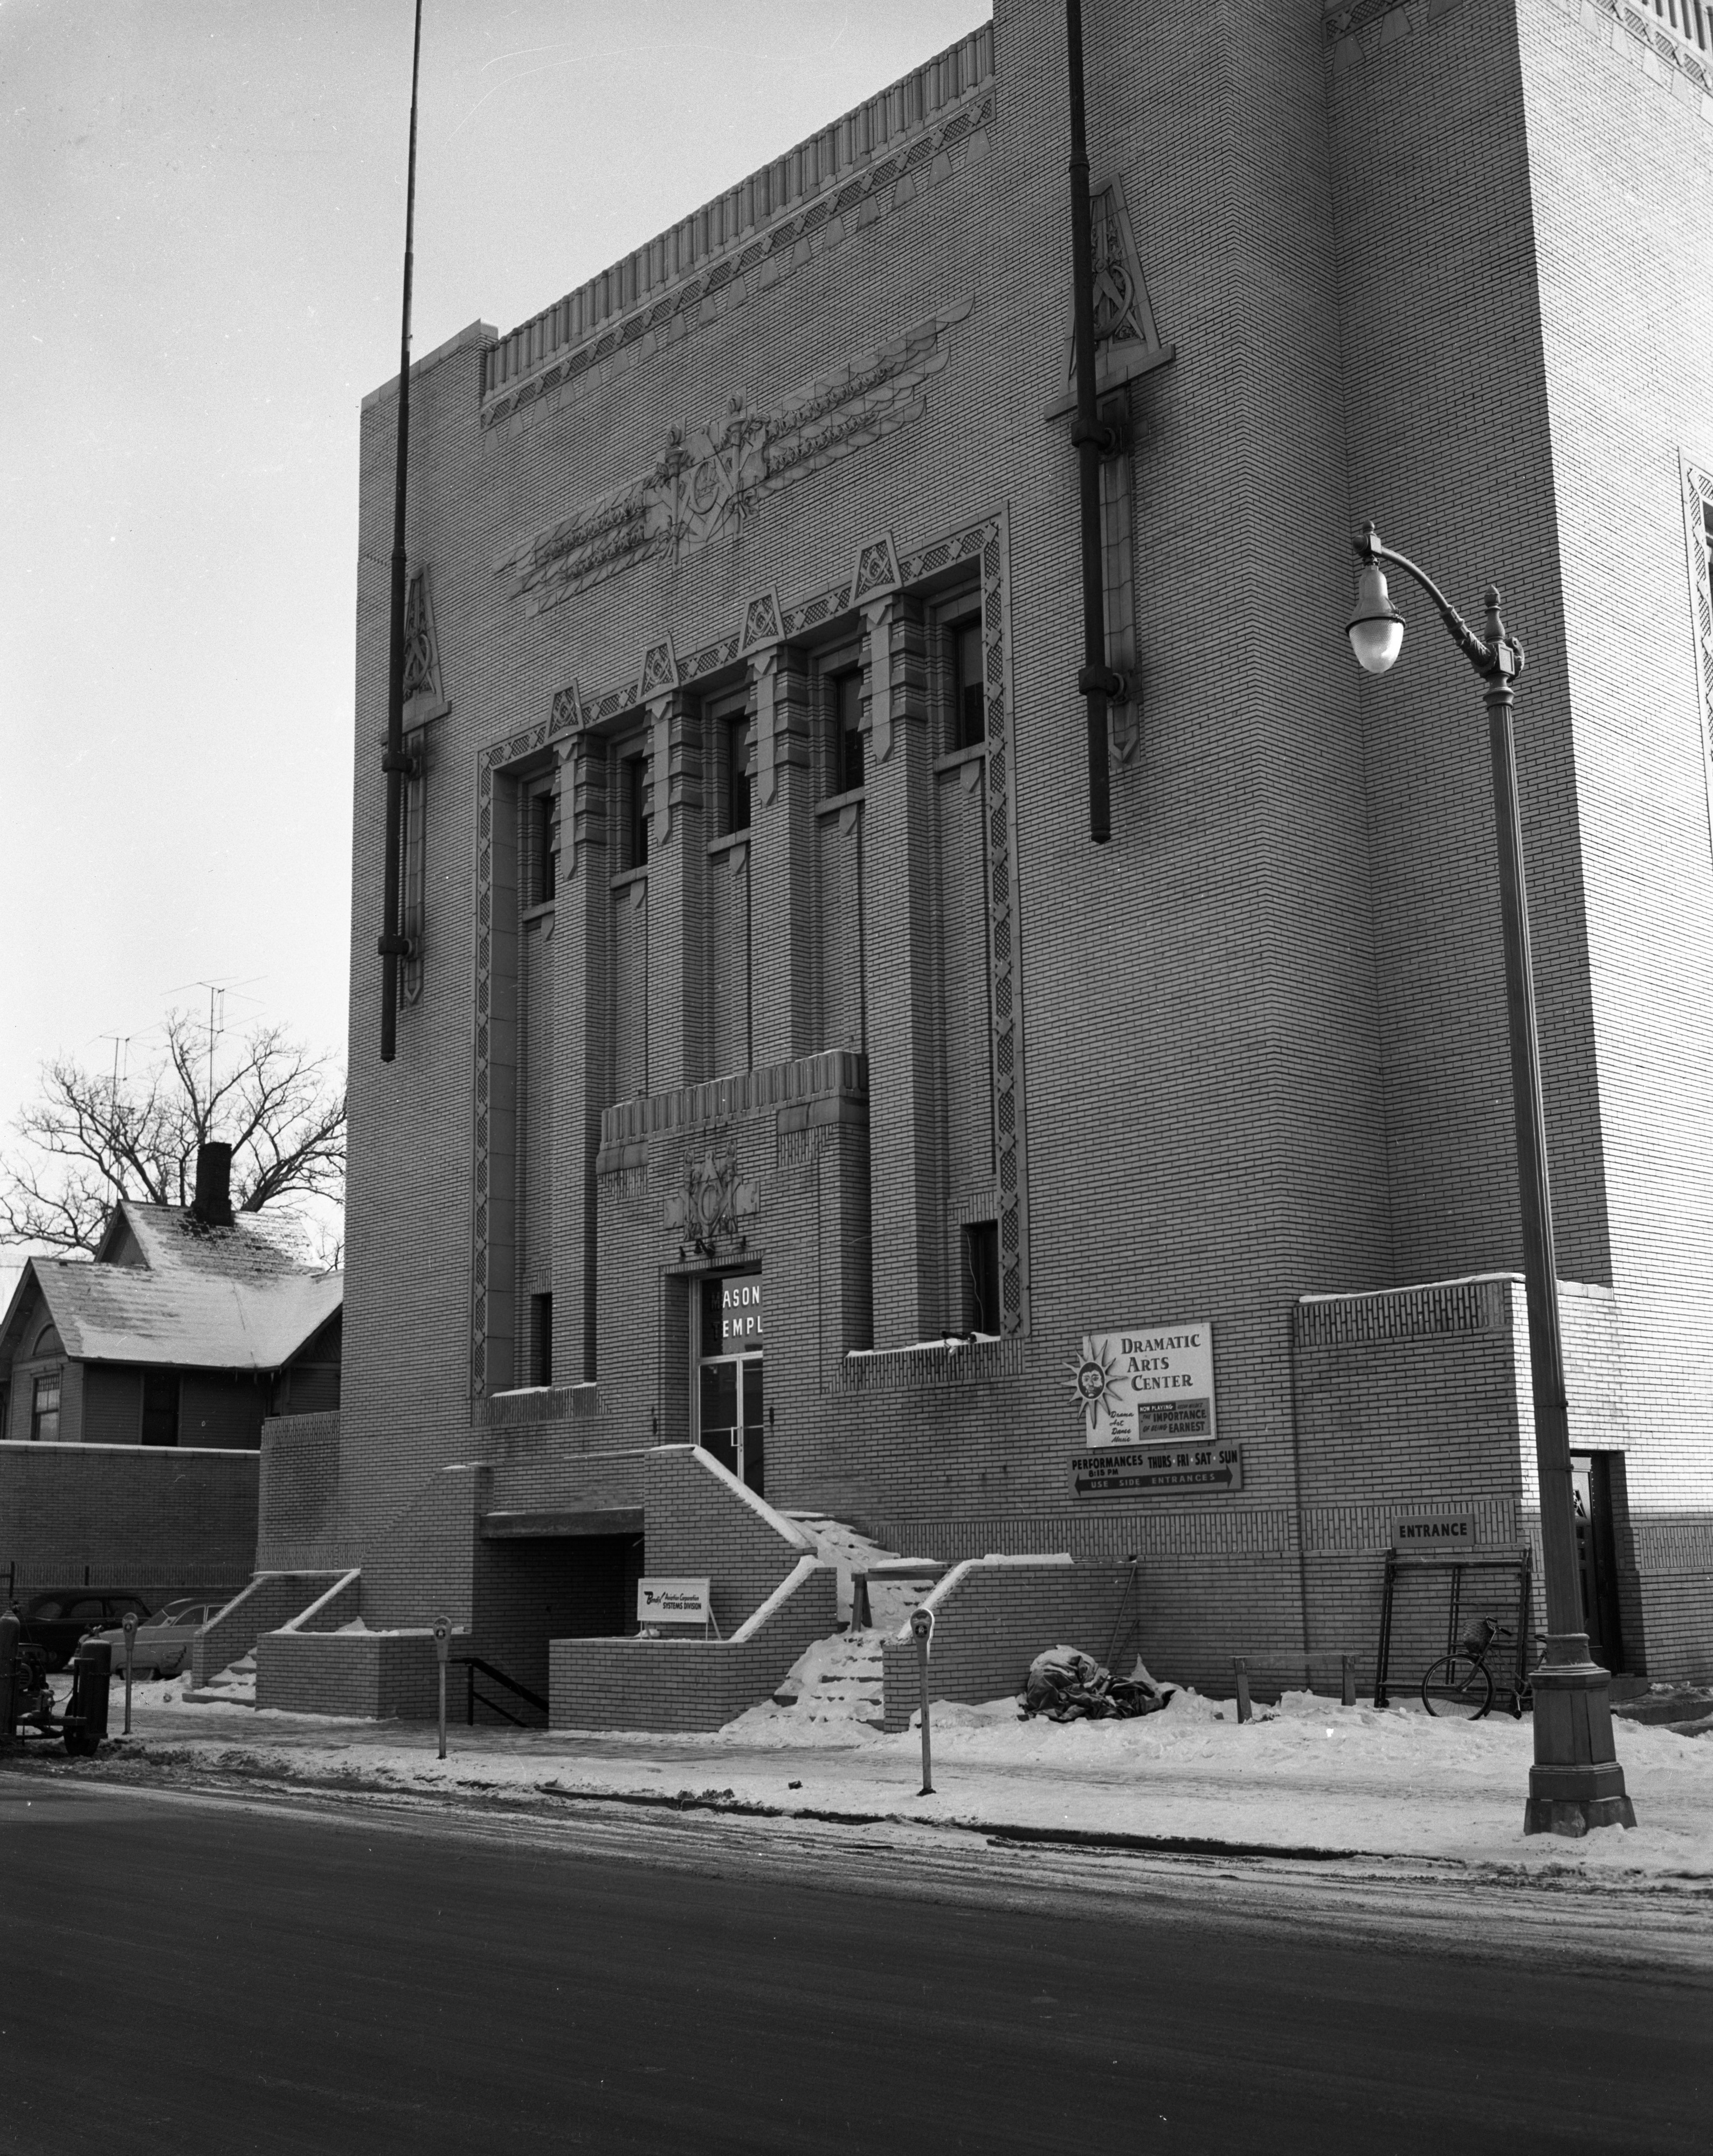 New exterior of Masonic Temple, January 1957 image